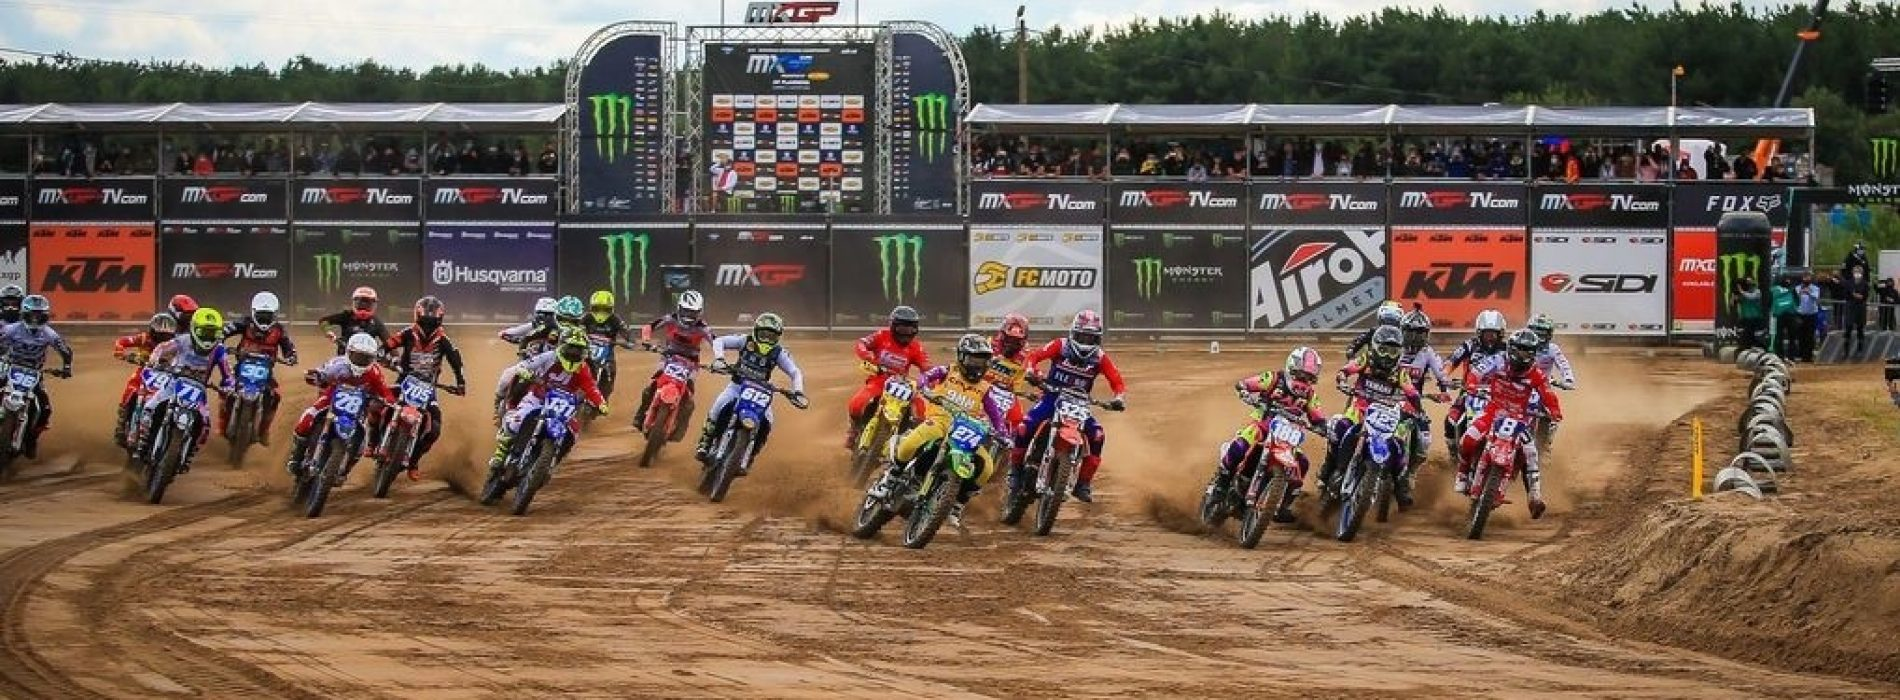 Women Motocross World Championship Rounds 1 and 2- what was learnt?